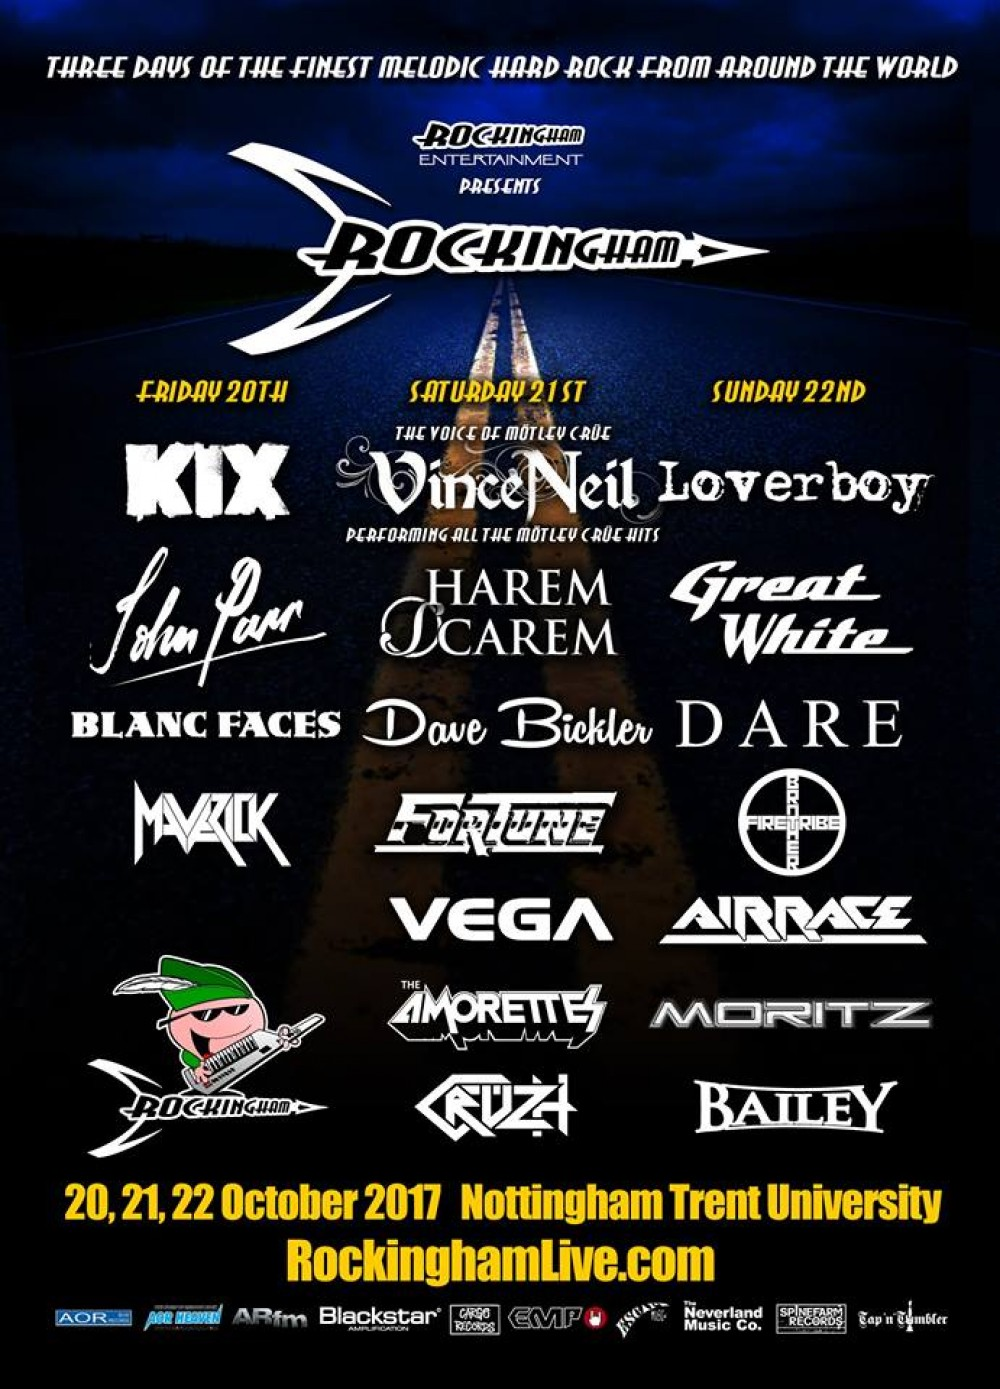 Rockingham Festival 2017 - John Parr added to the final Line-up for Rockingham 3!